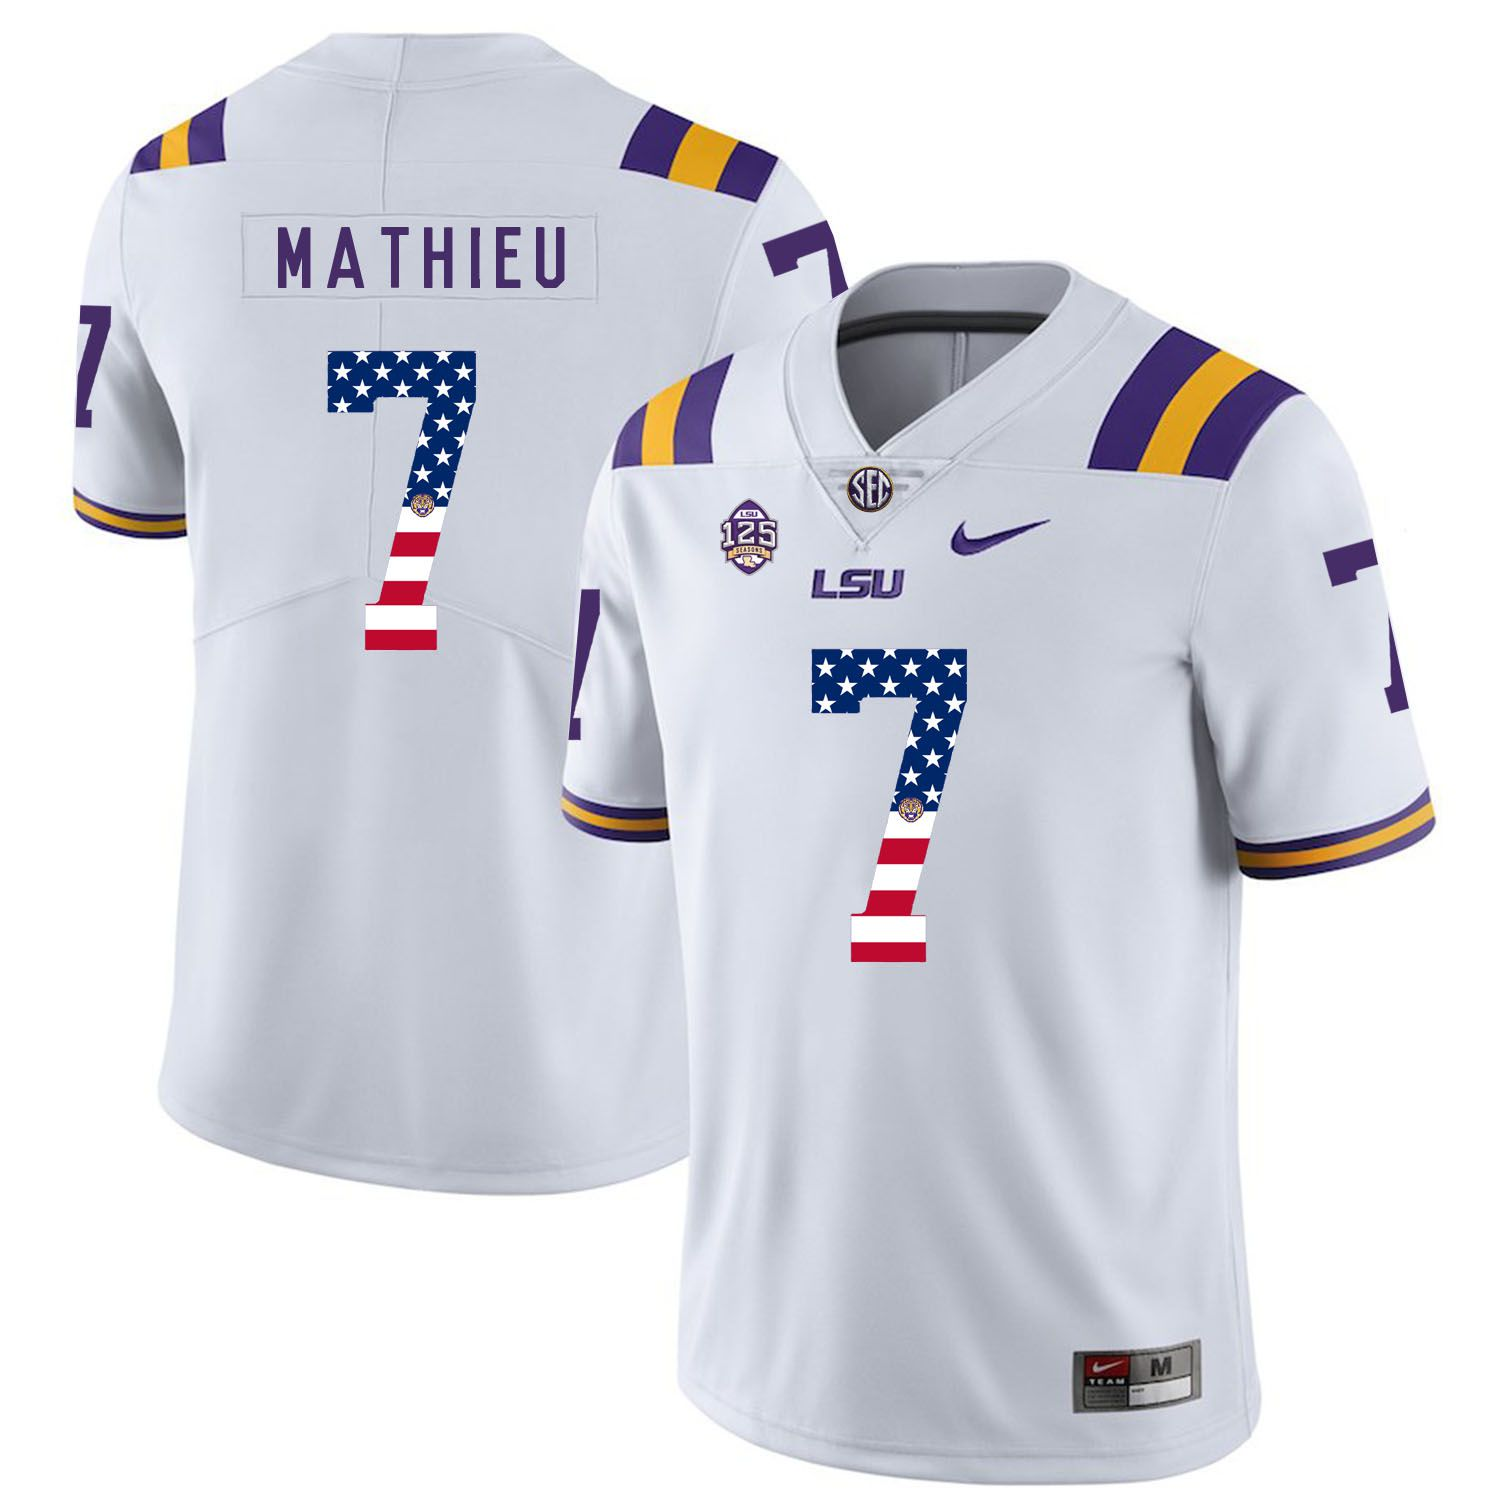 Men LSU Tigers 7 Mathieu White Flag Customized NCAA Jerseys